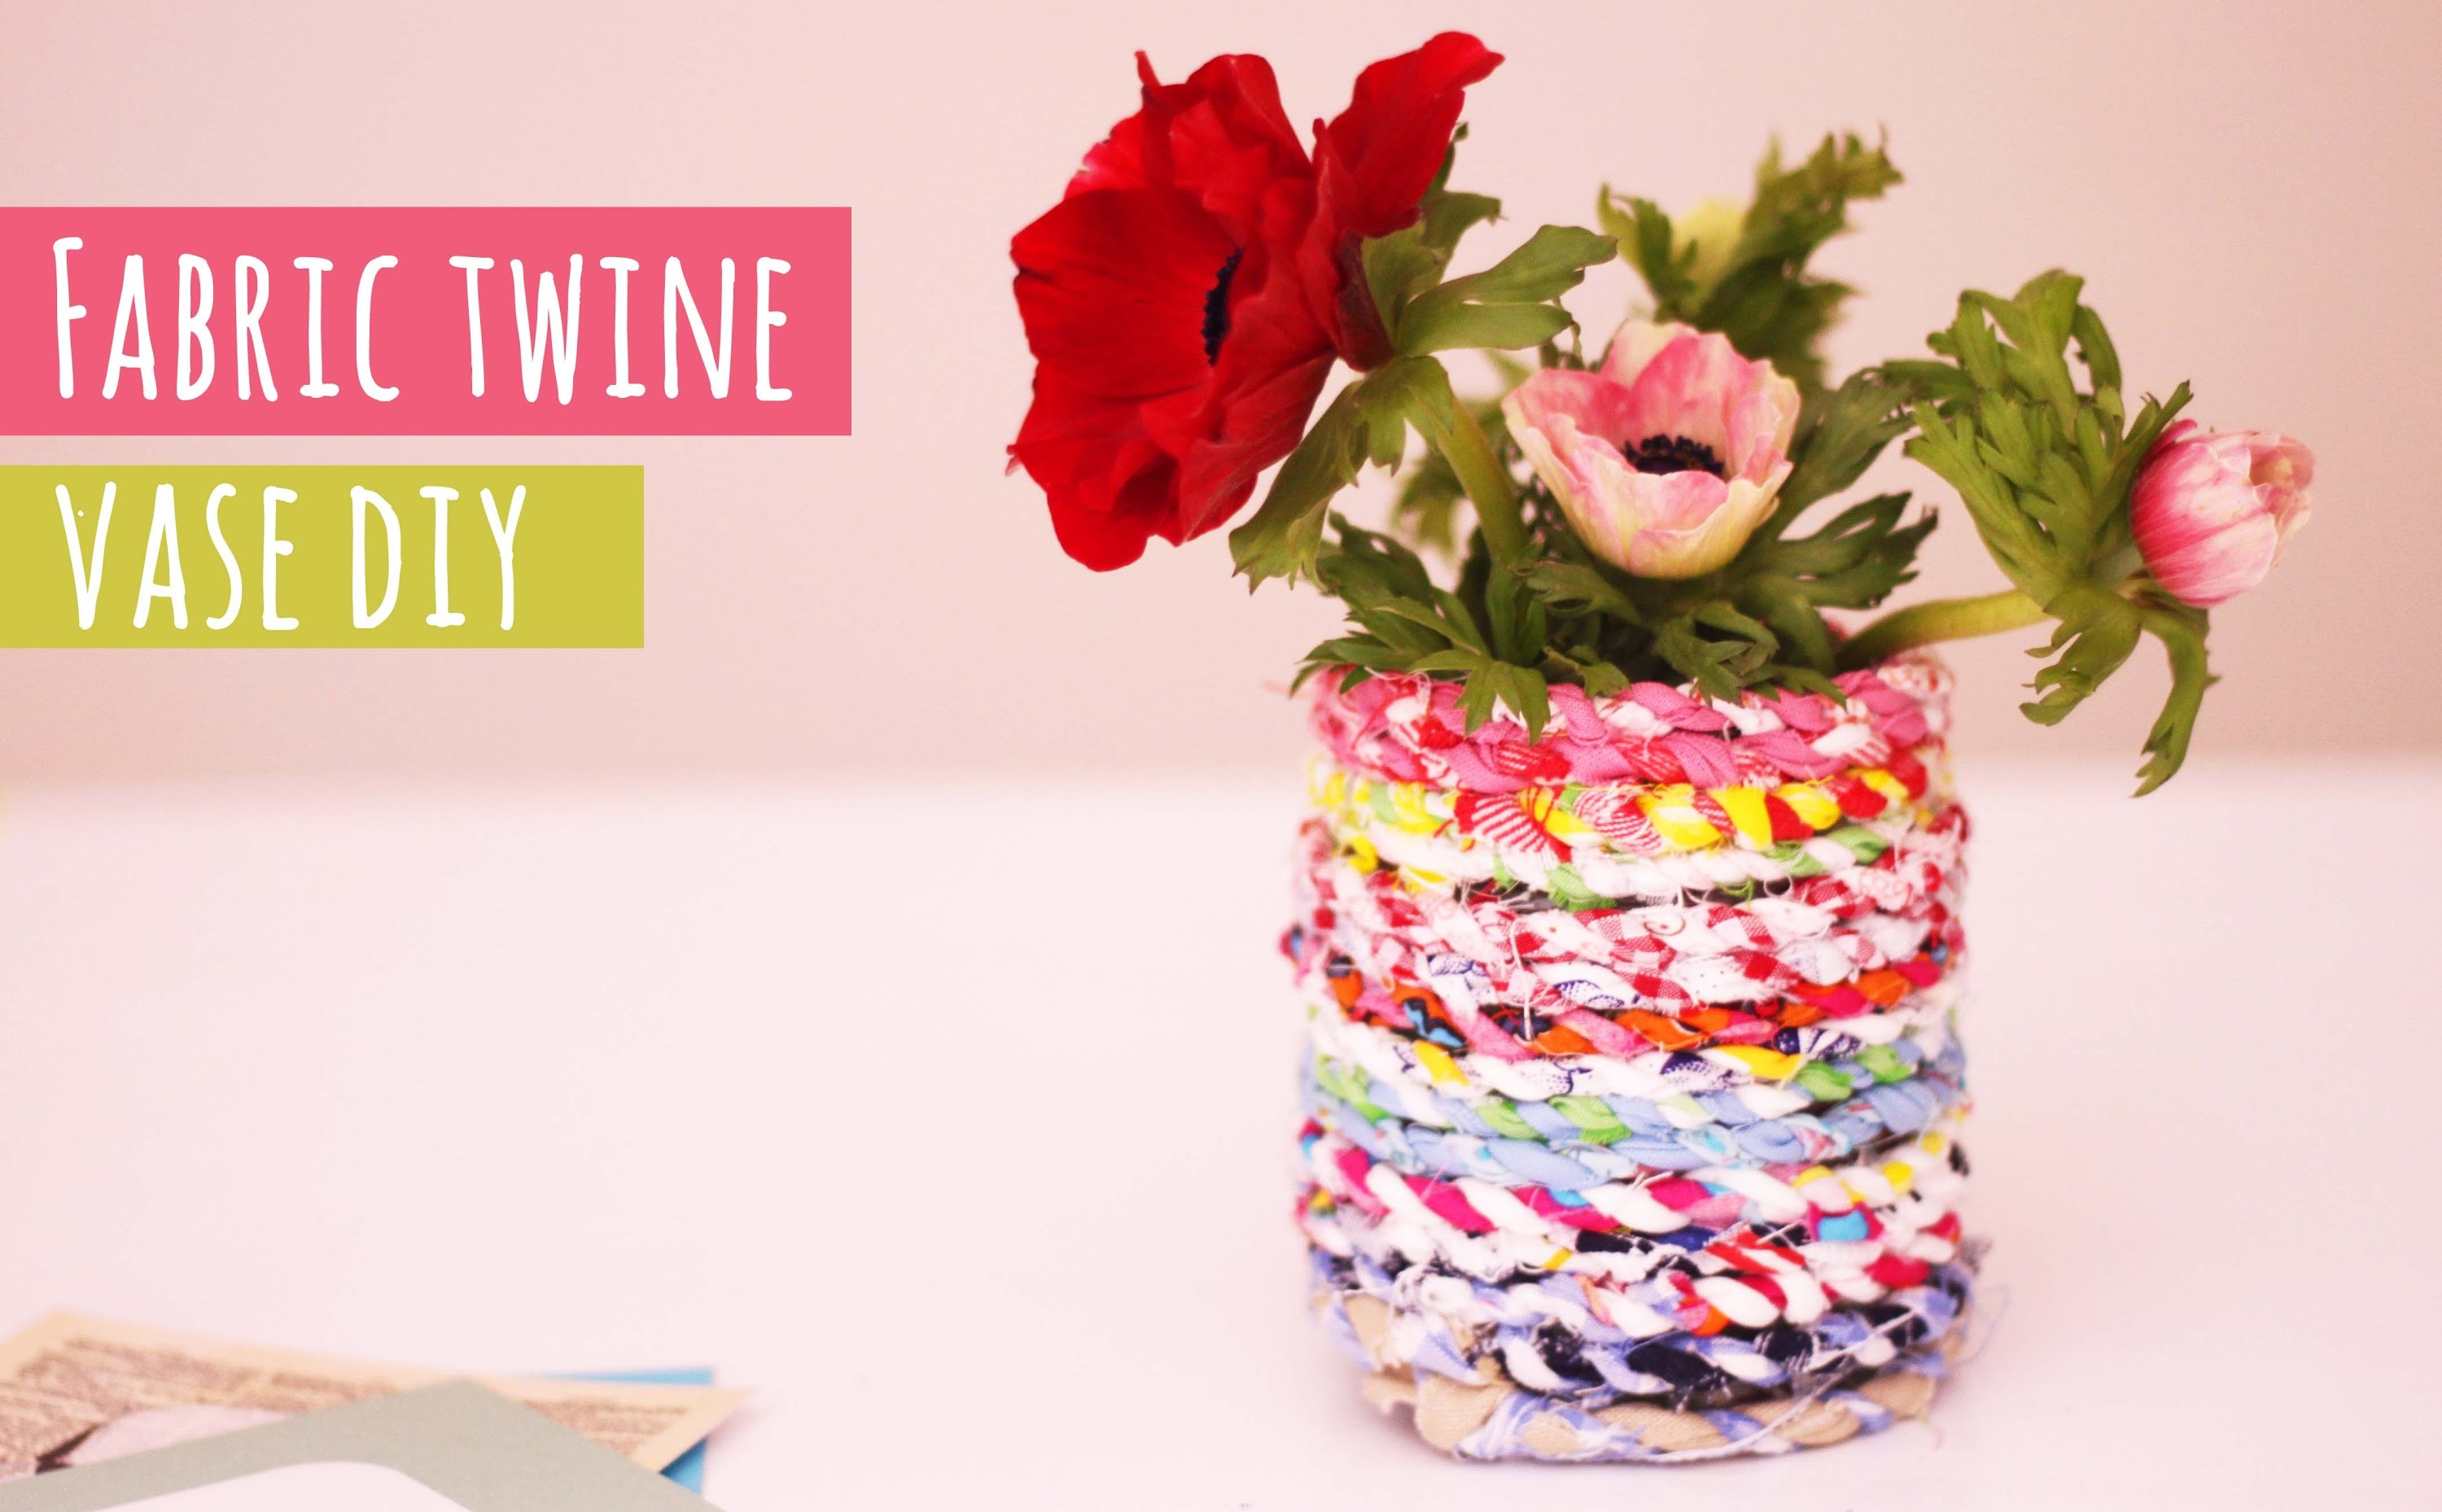 Fabric twine vase tutorial